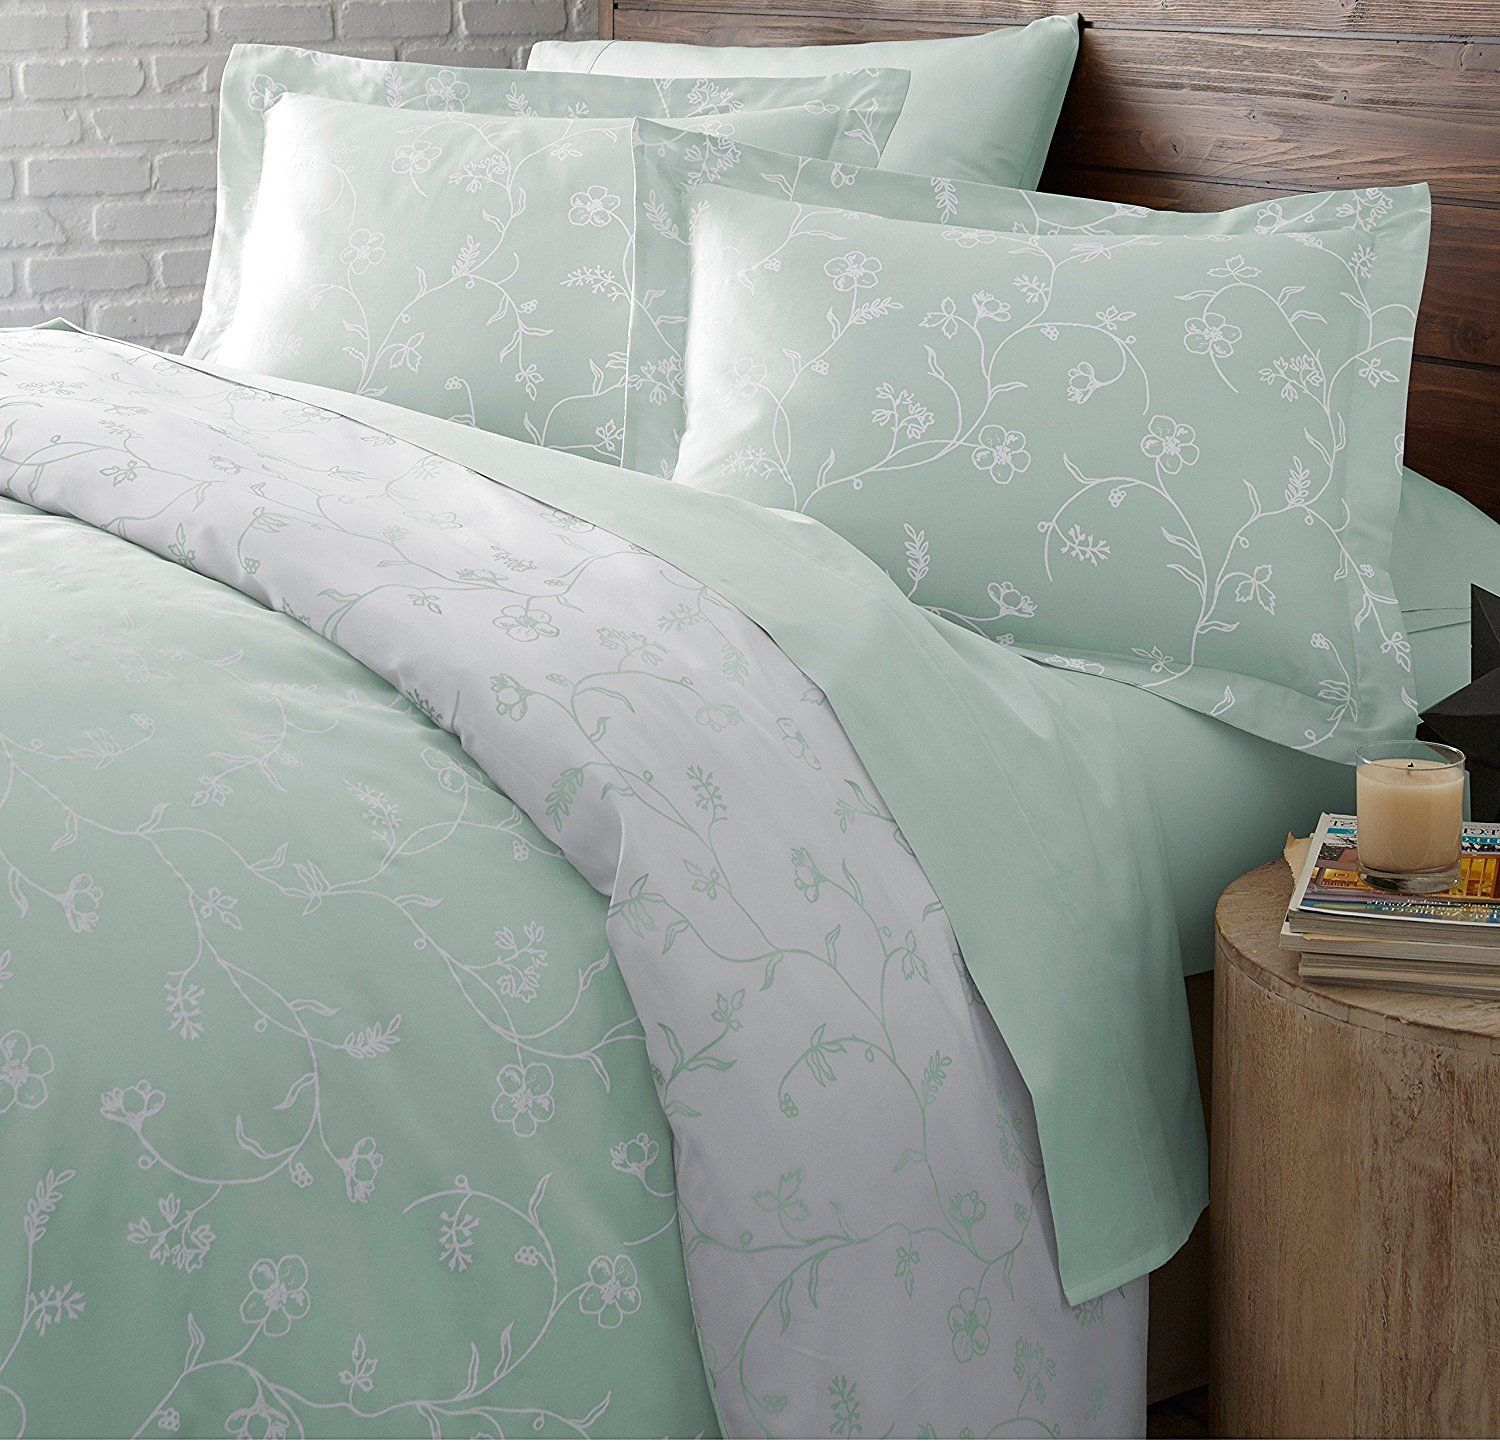 navy bedding duvet ideas most full set cover quilt ease gray grey and yellow covers sets blue single with best exceptional sweetgalas black size royal of king style queen white